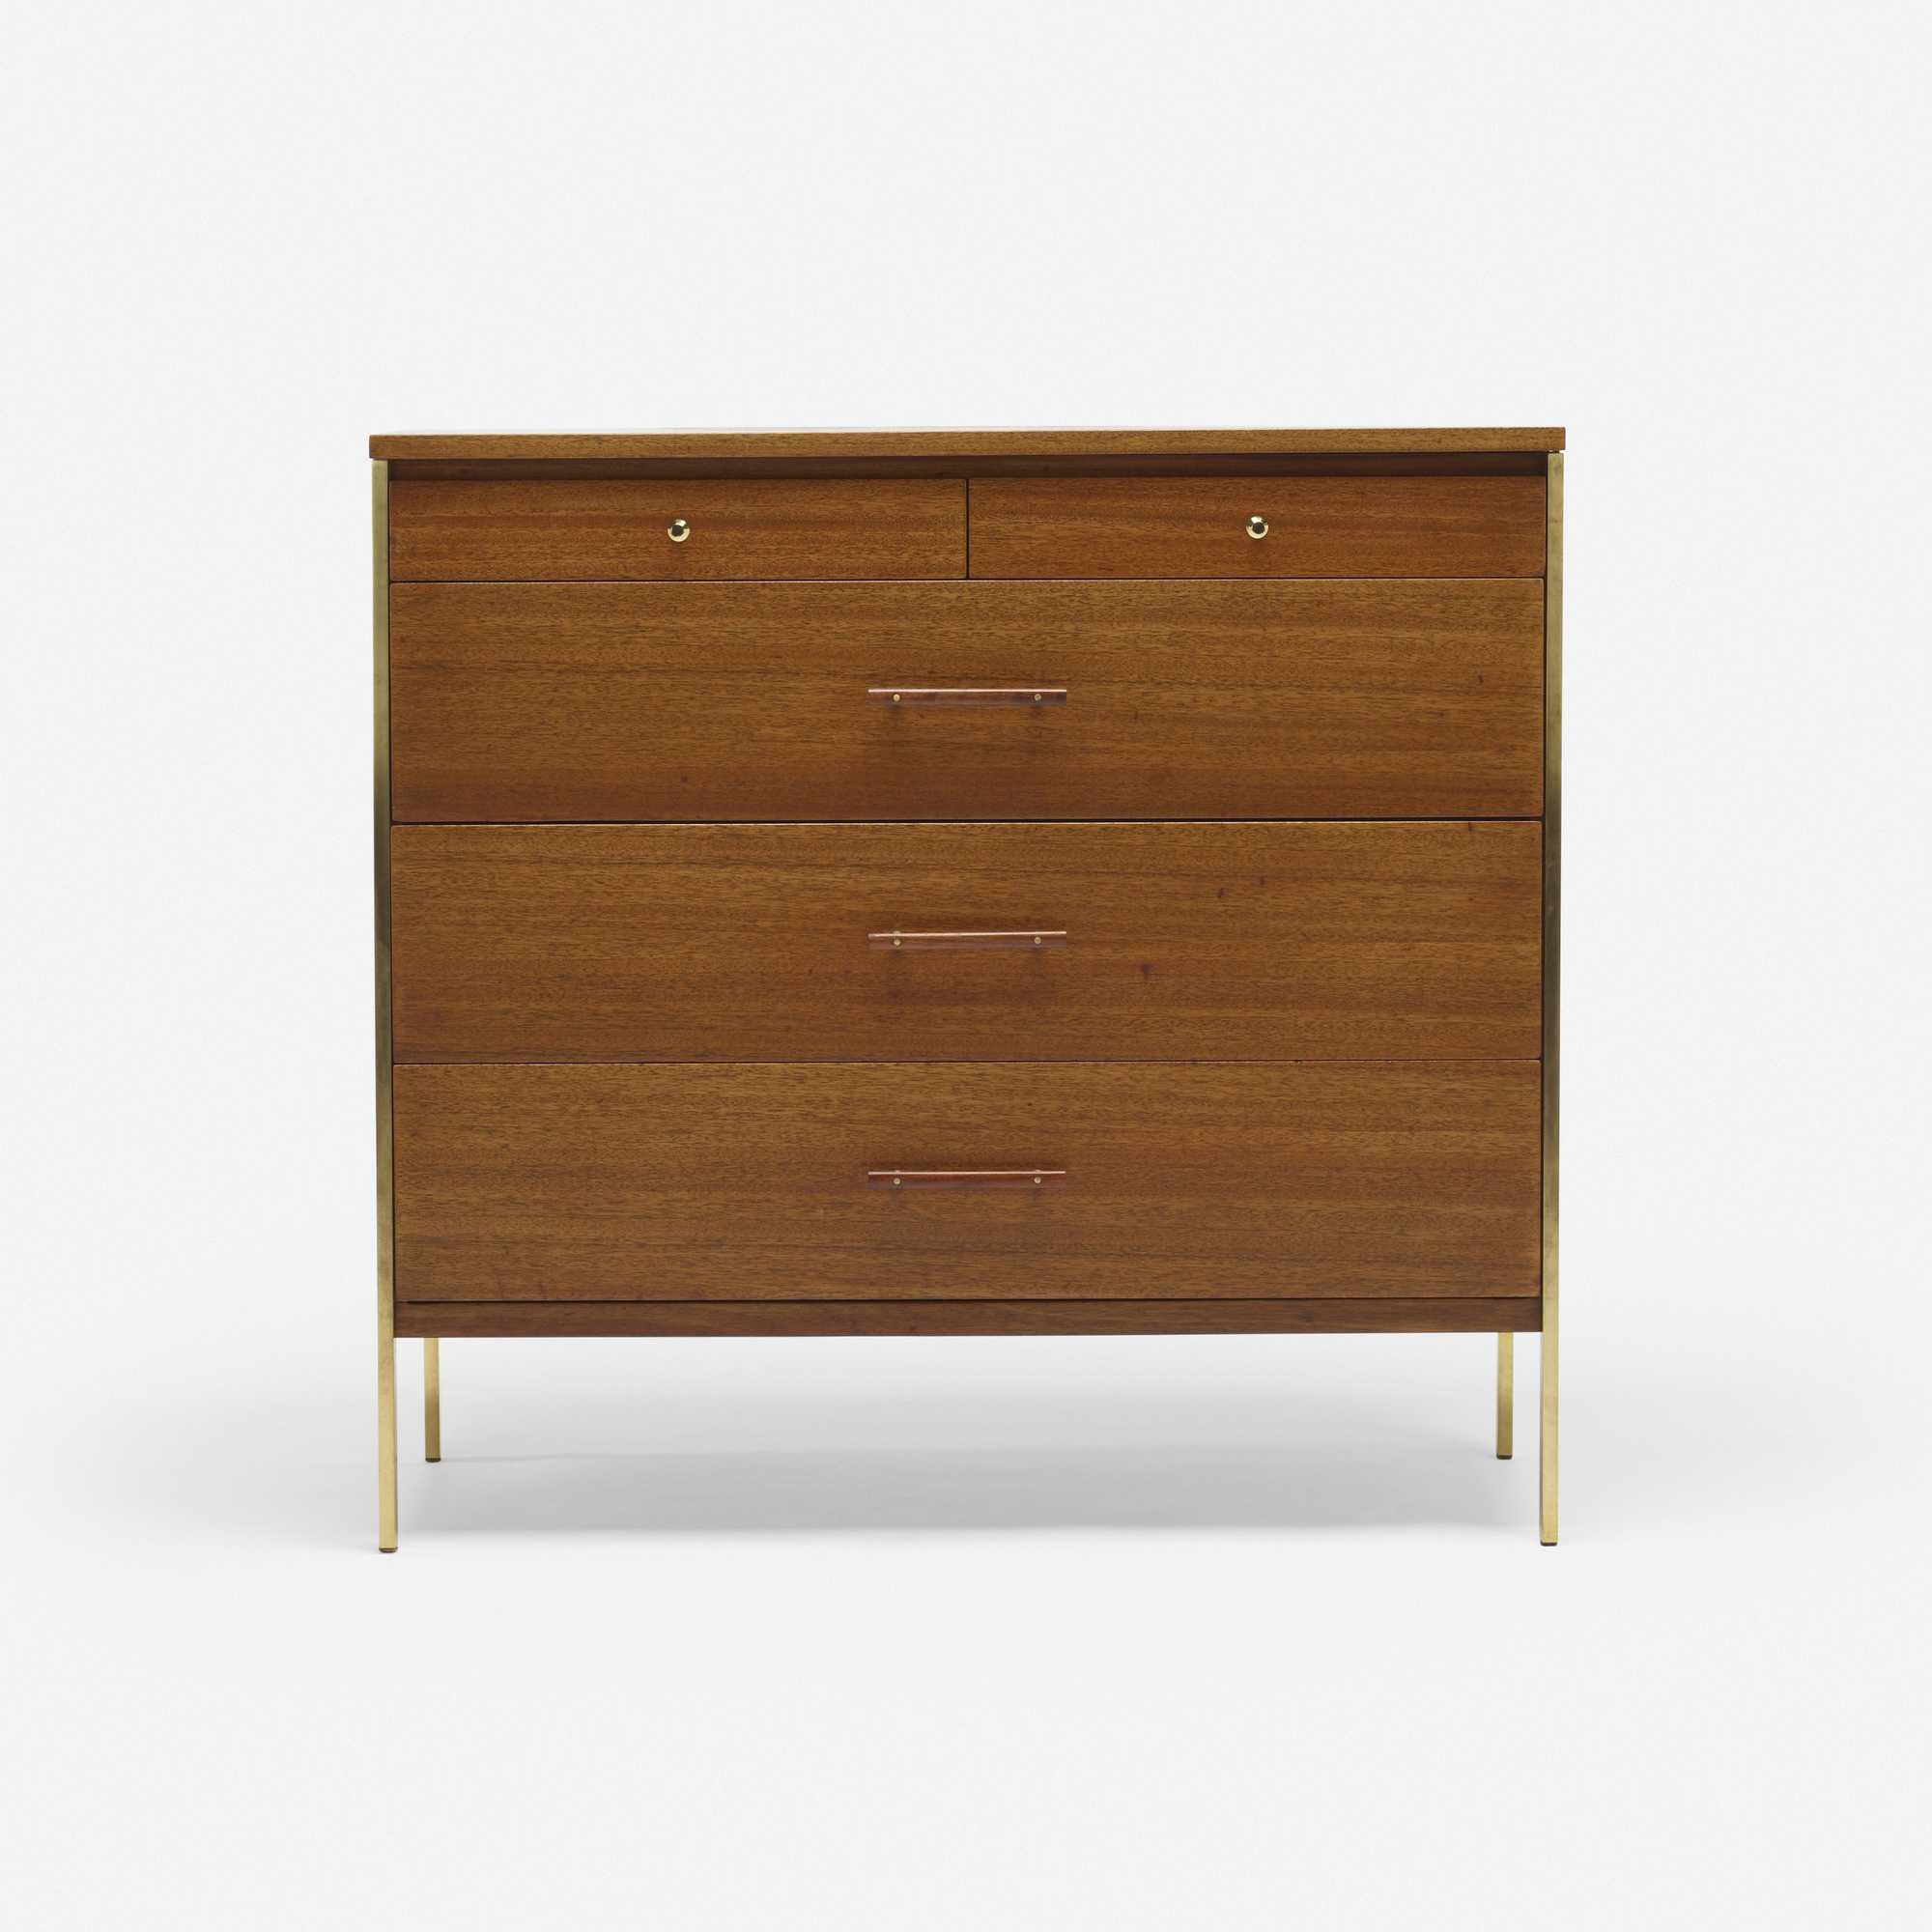 558: Paul McCobb / Calvin Group cabinet (2 of 3)